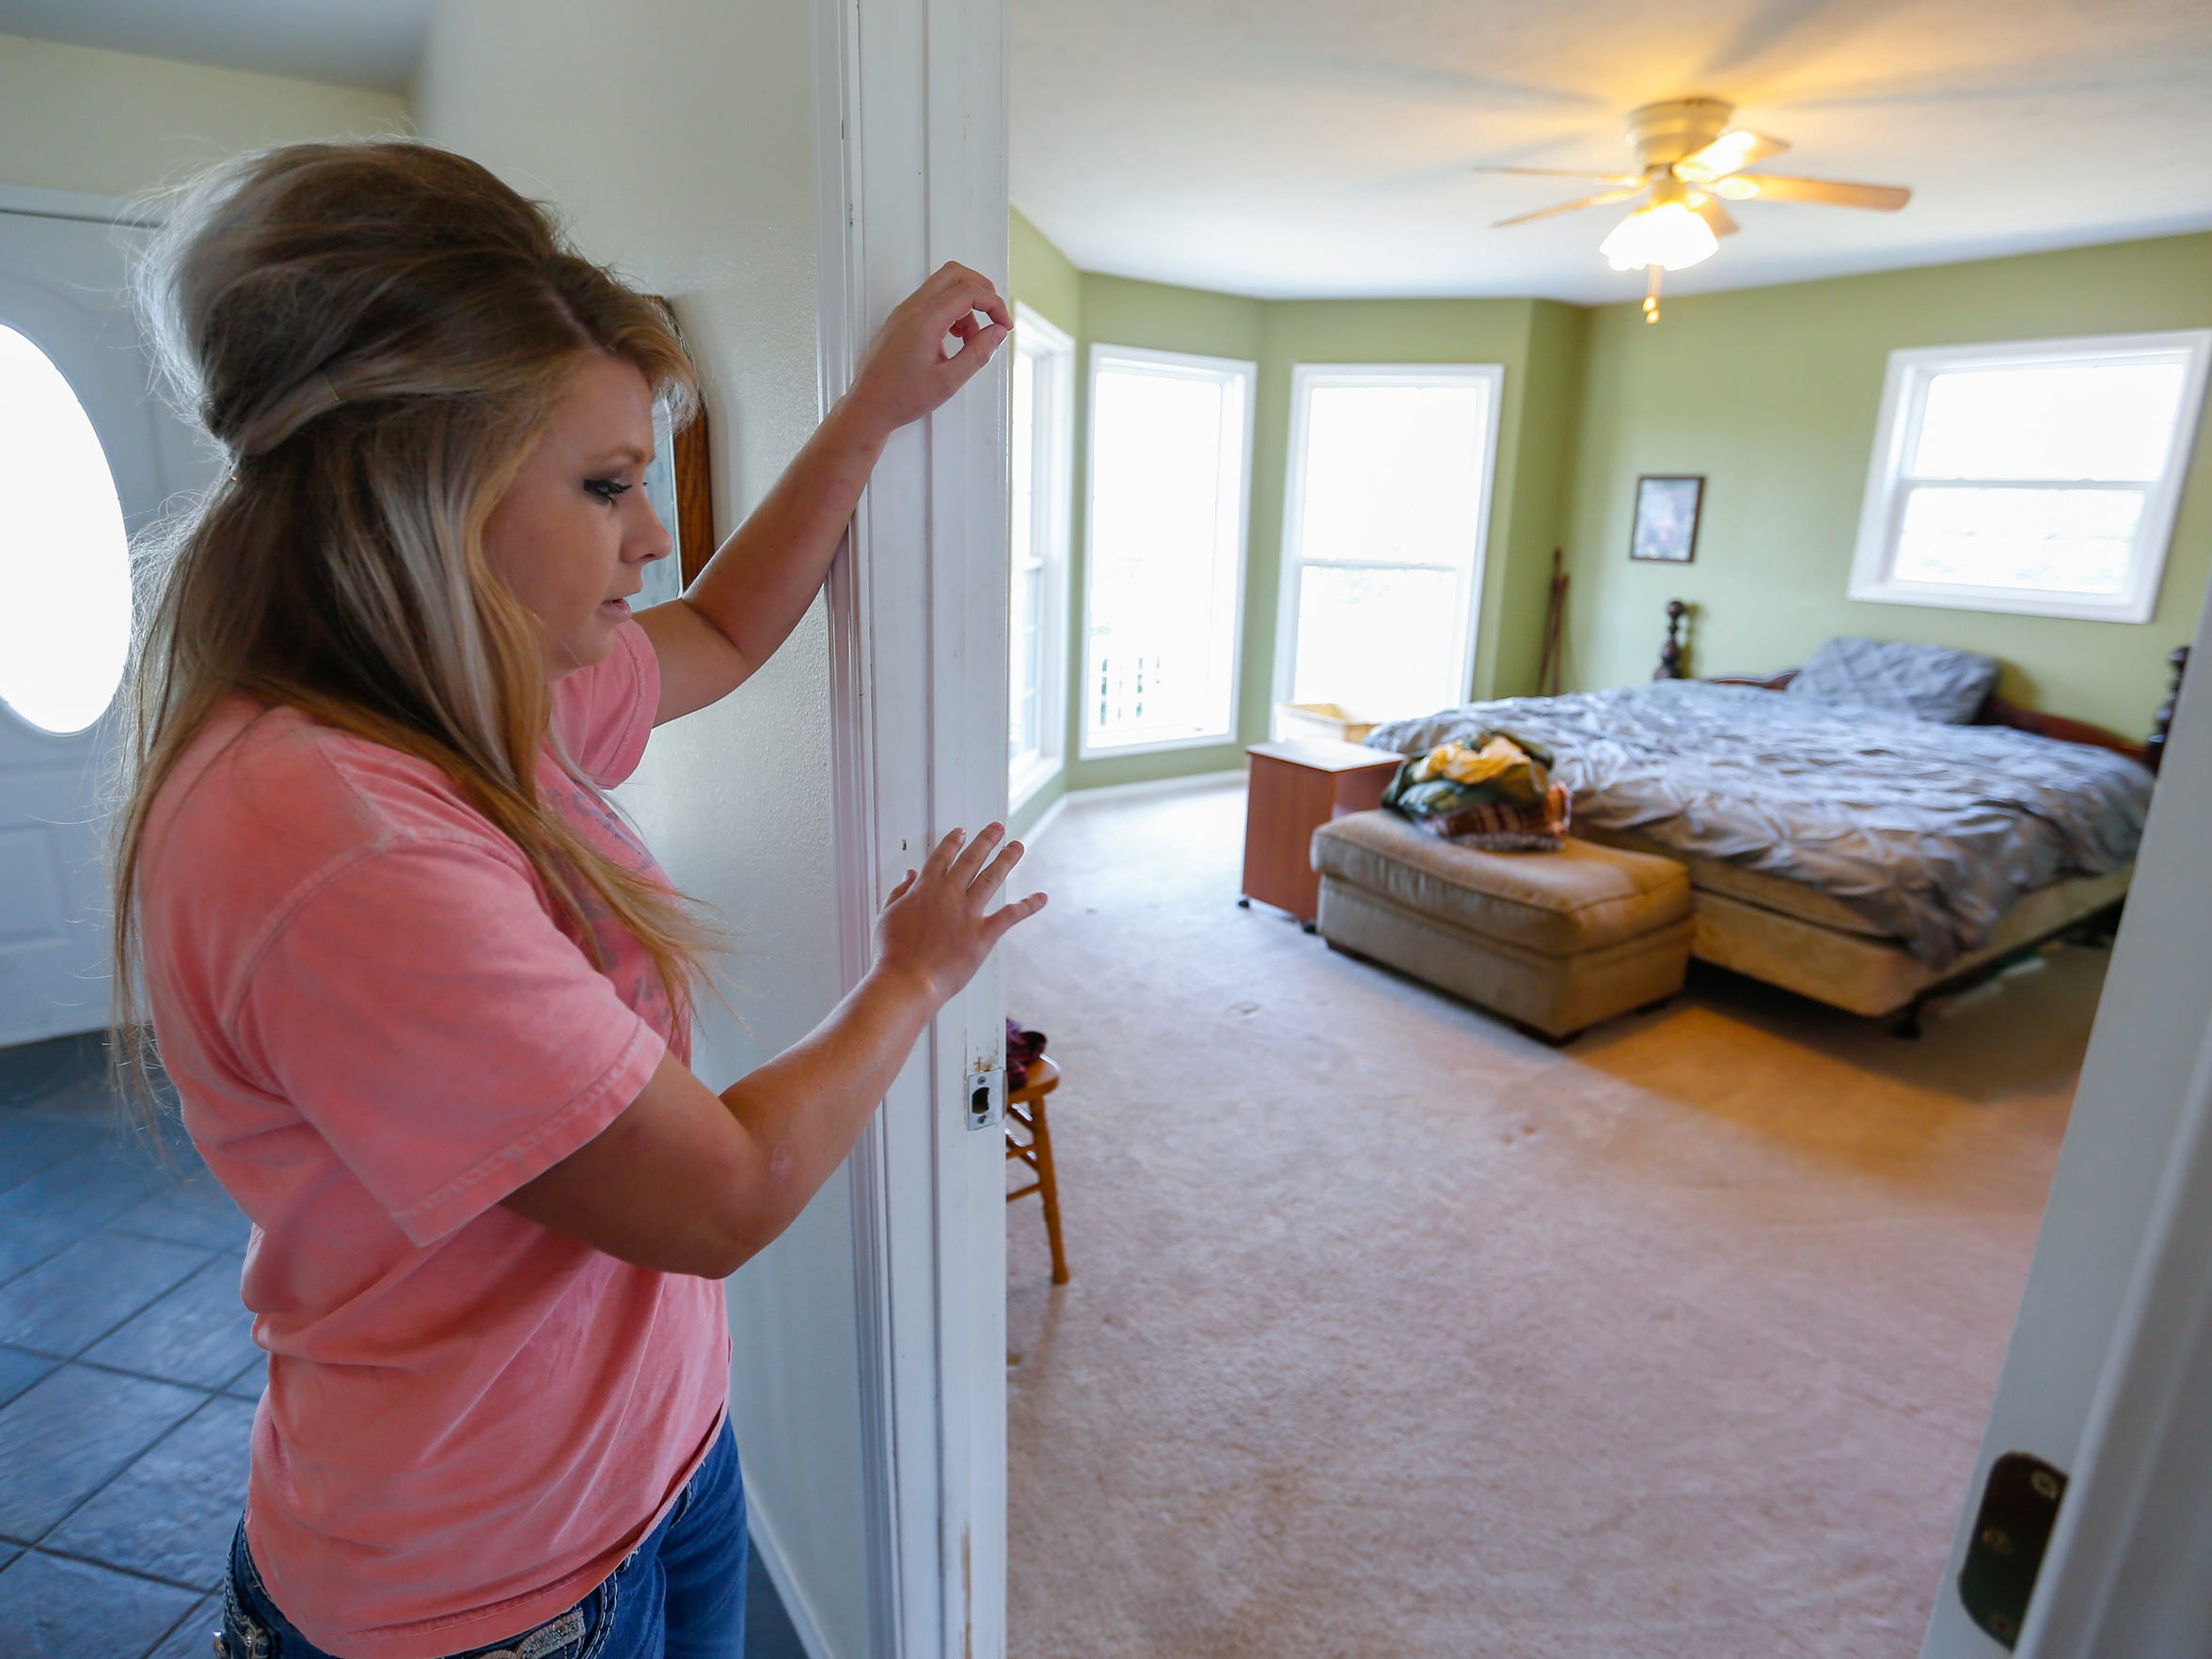 Amanda Jennings was home the night her mother died. She glanced into her parents' bedroom and saw her dad kneeling over her mother.